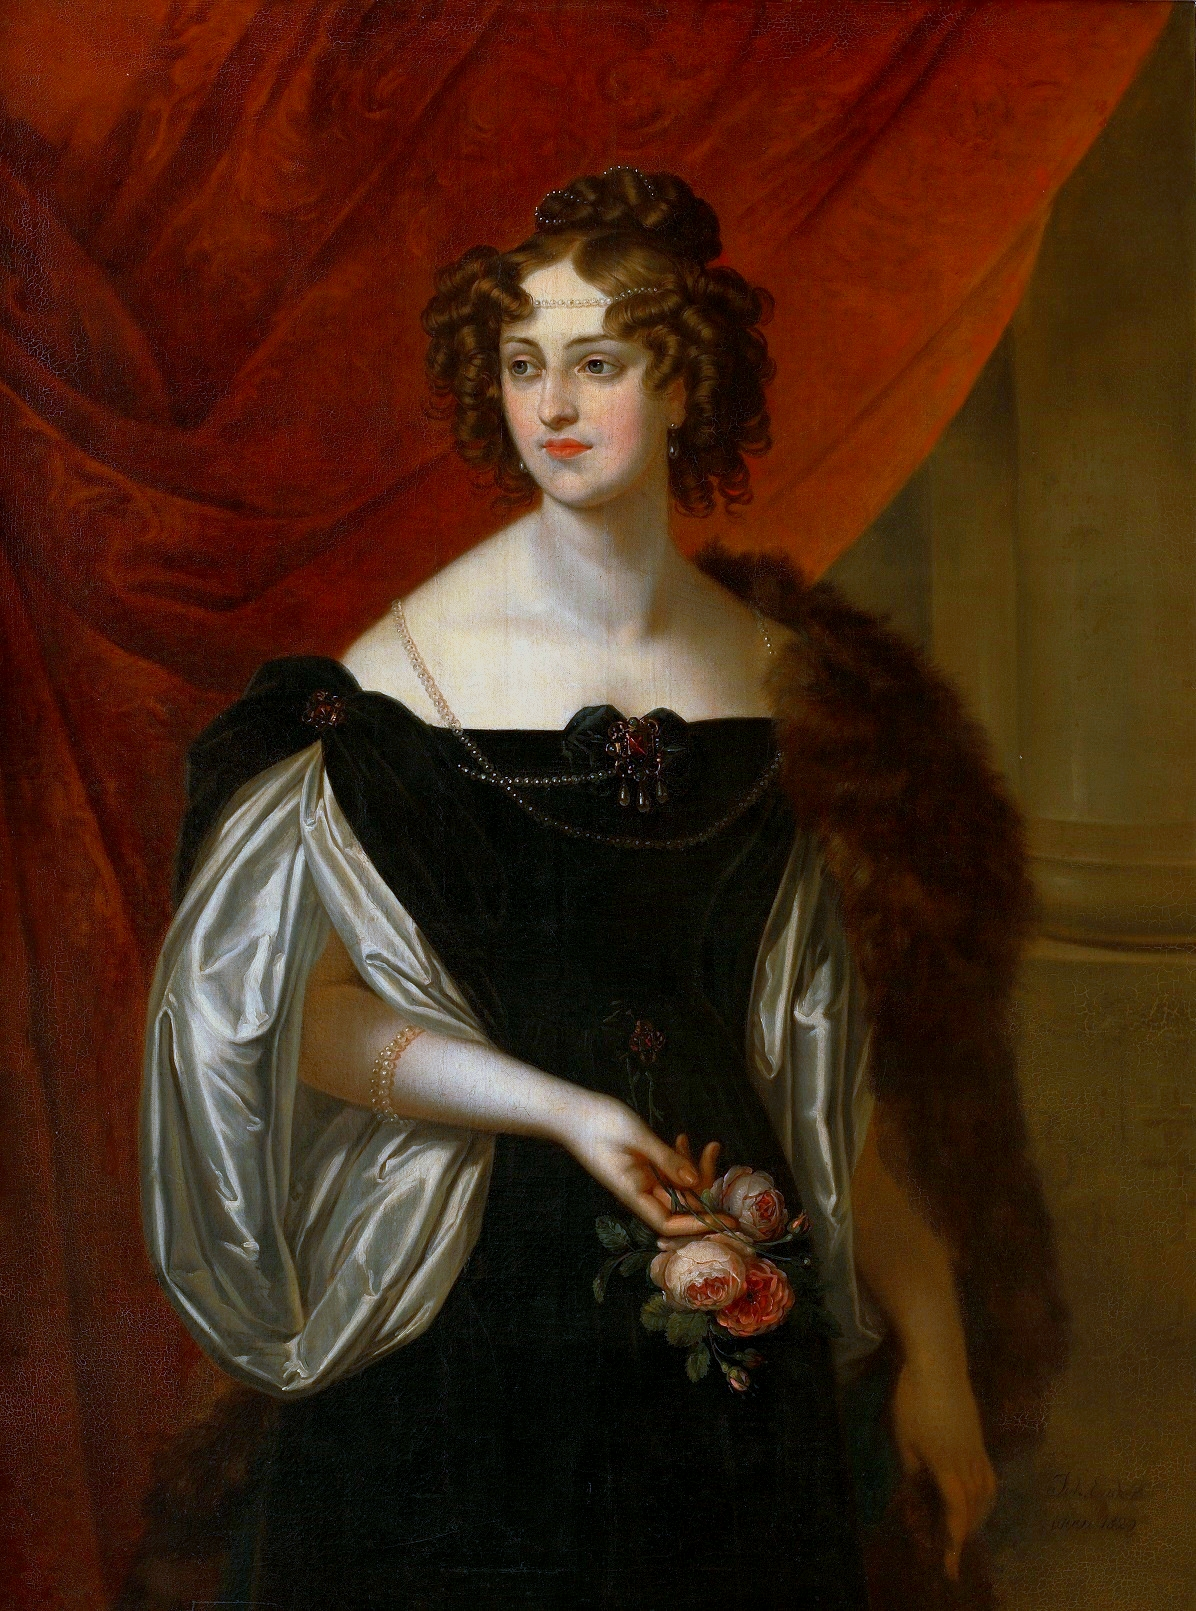 https://upload.wikimedia.org/wikipedia/commons/9/97/Ender_Natalia_Sanguszkowa.jpg